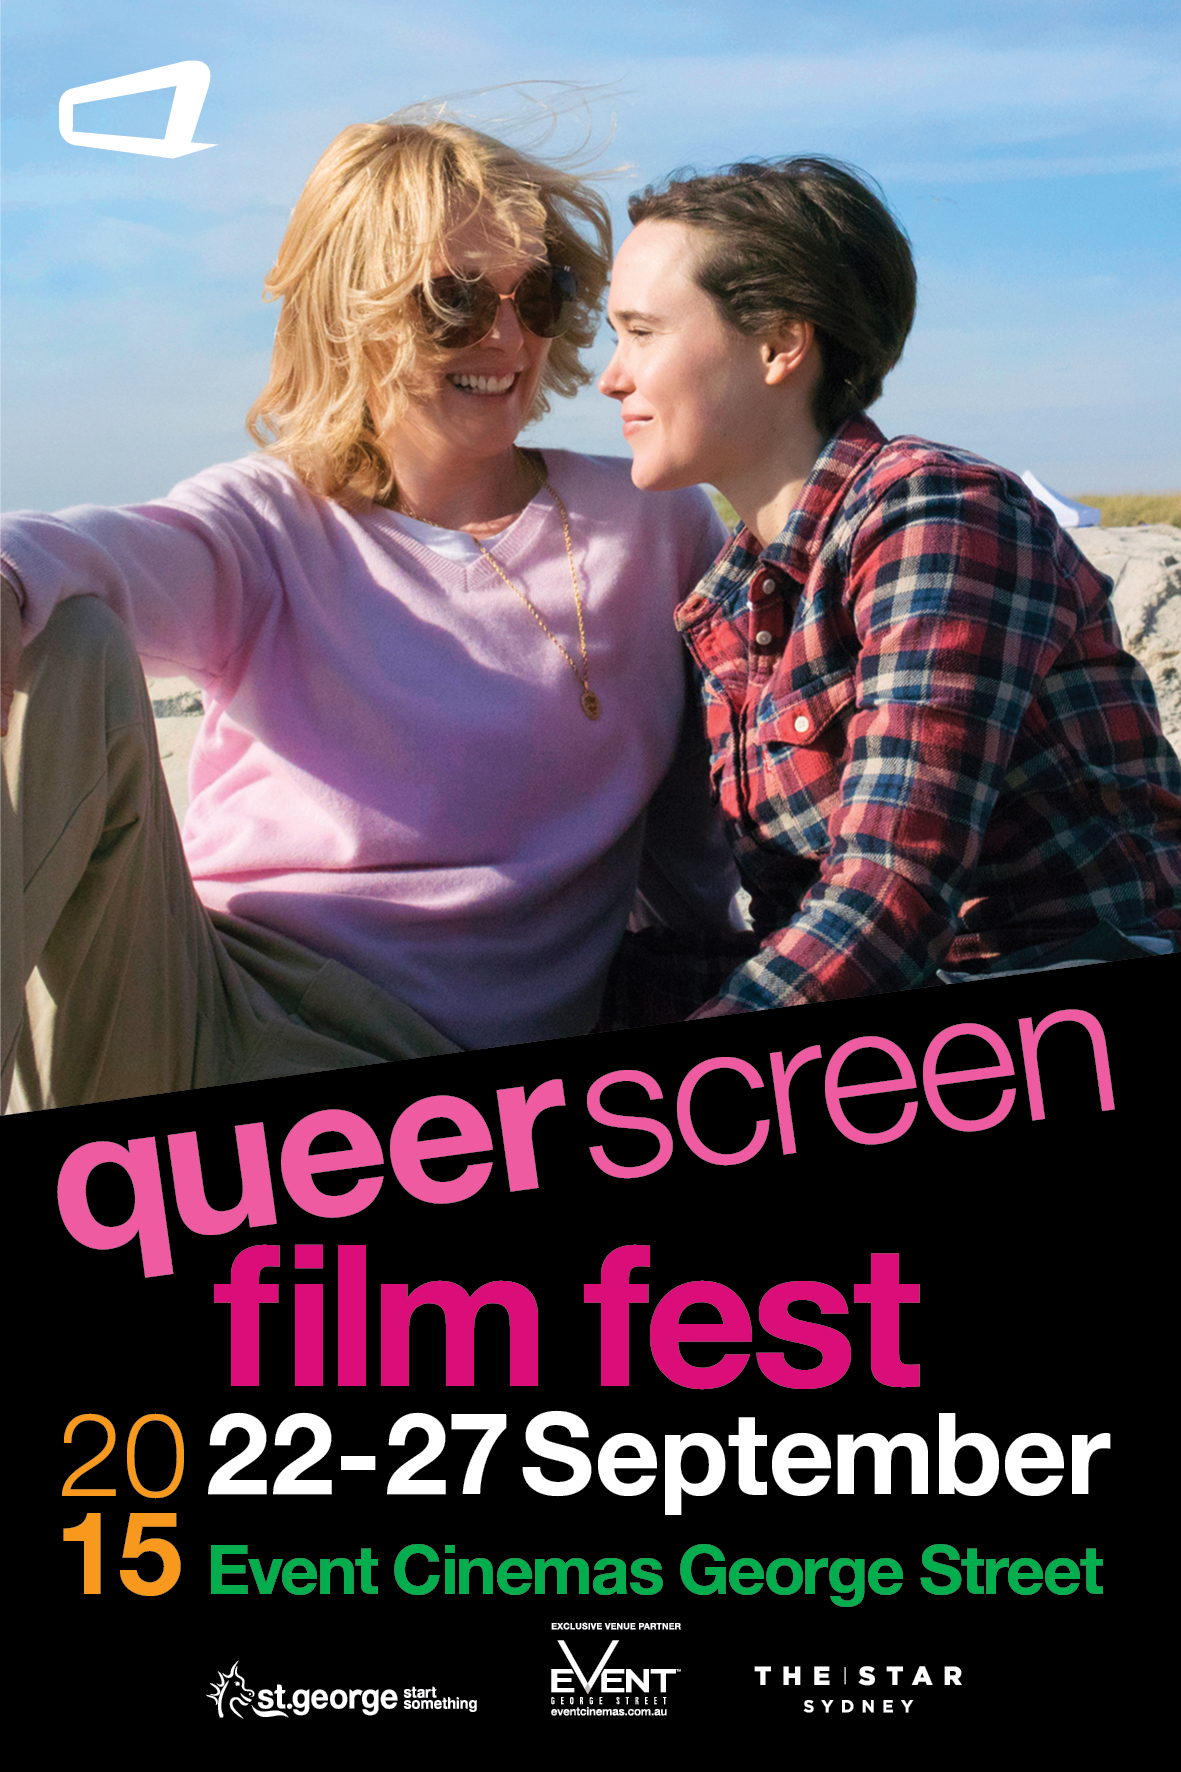 Queer Screen Film Fest 2015